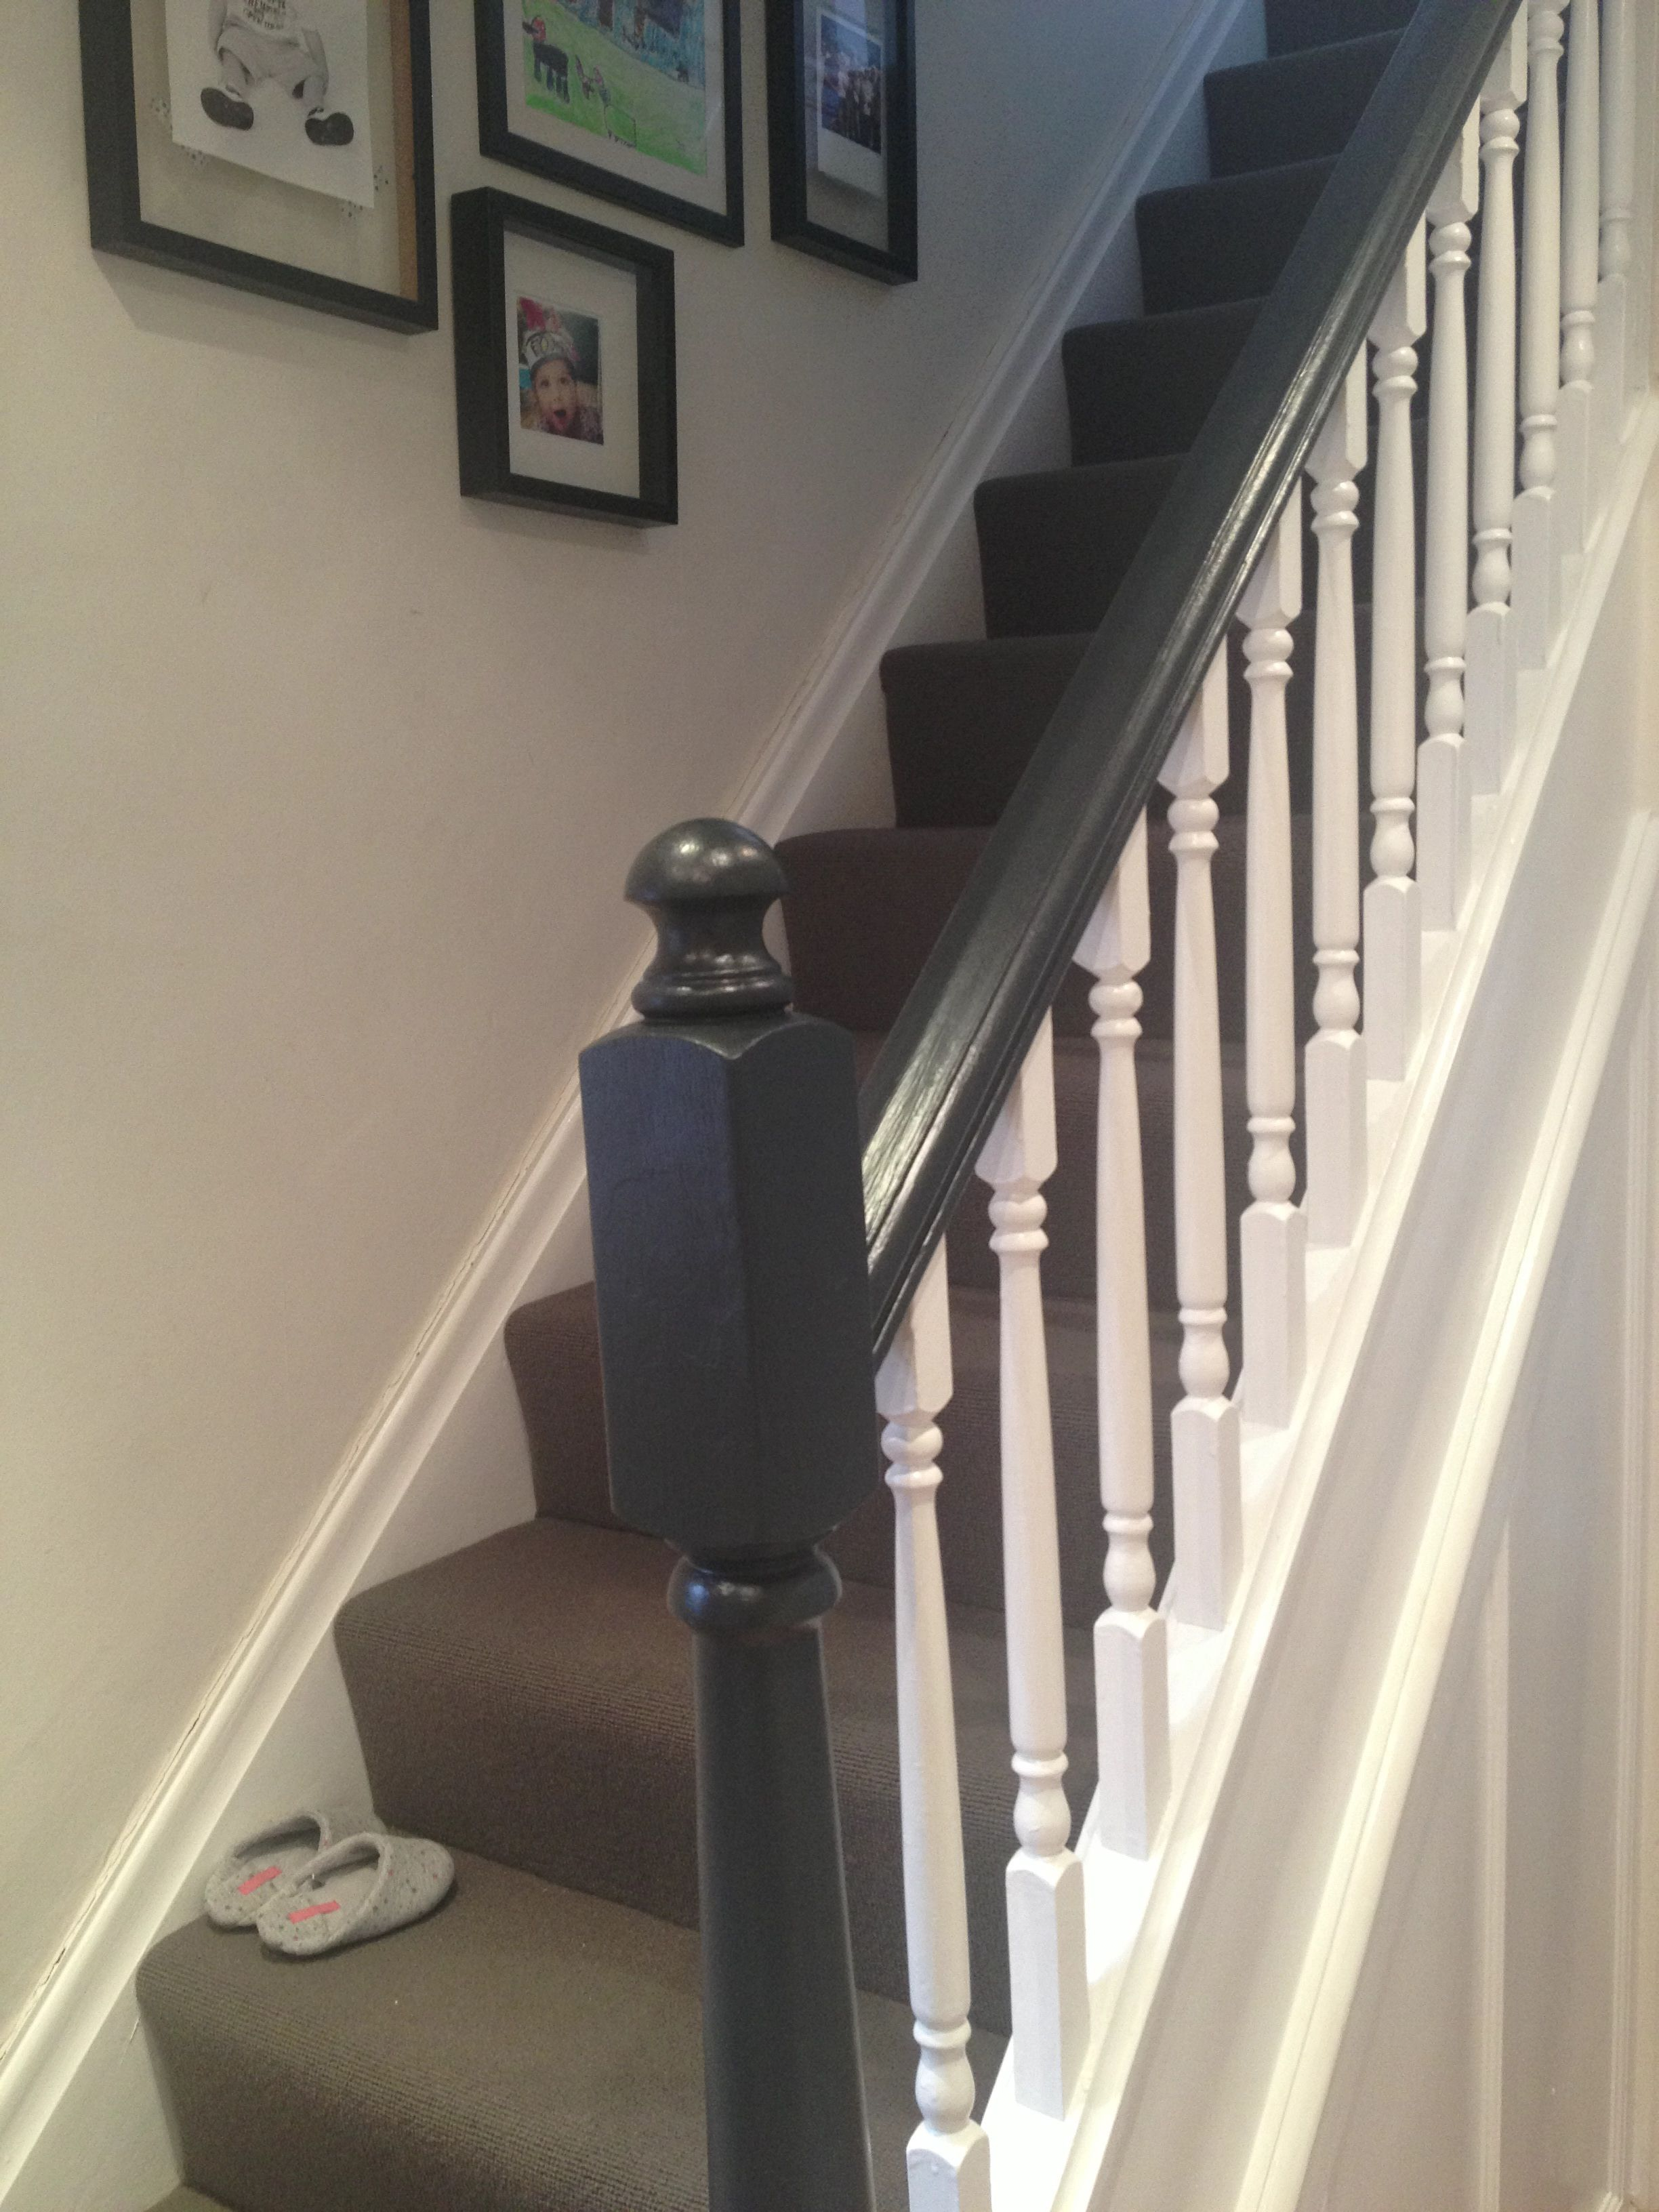 Best Painted Bannister In Hallway Farrow Ball Railings 400 x 300